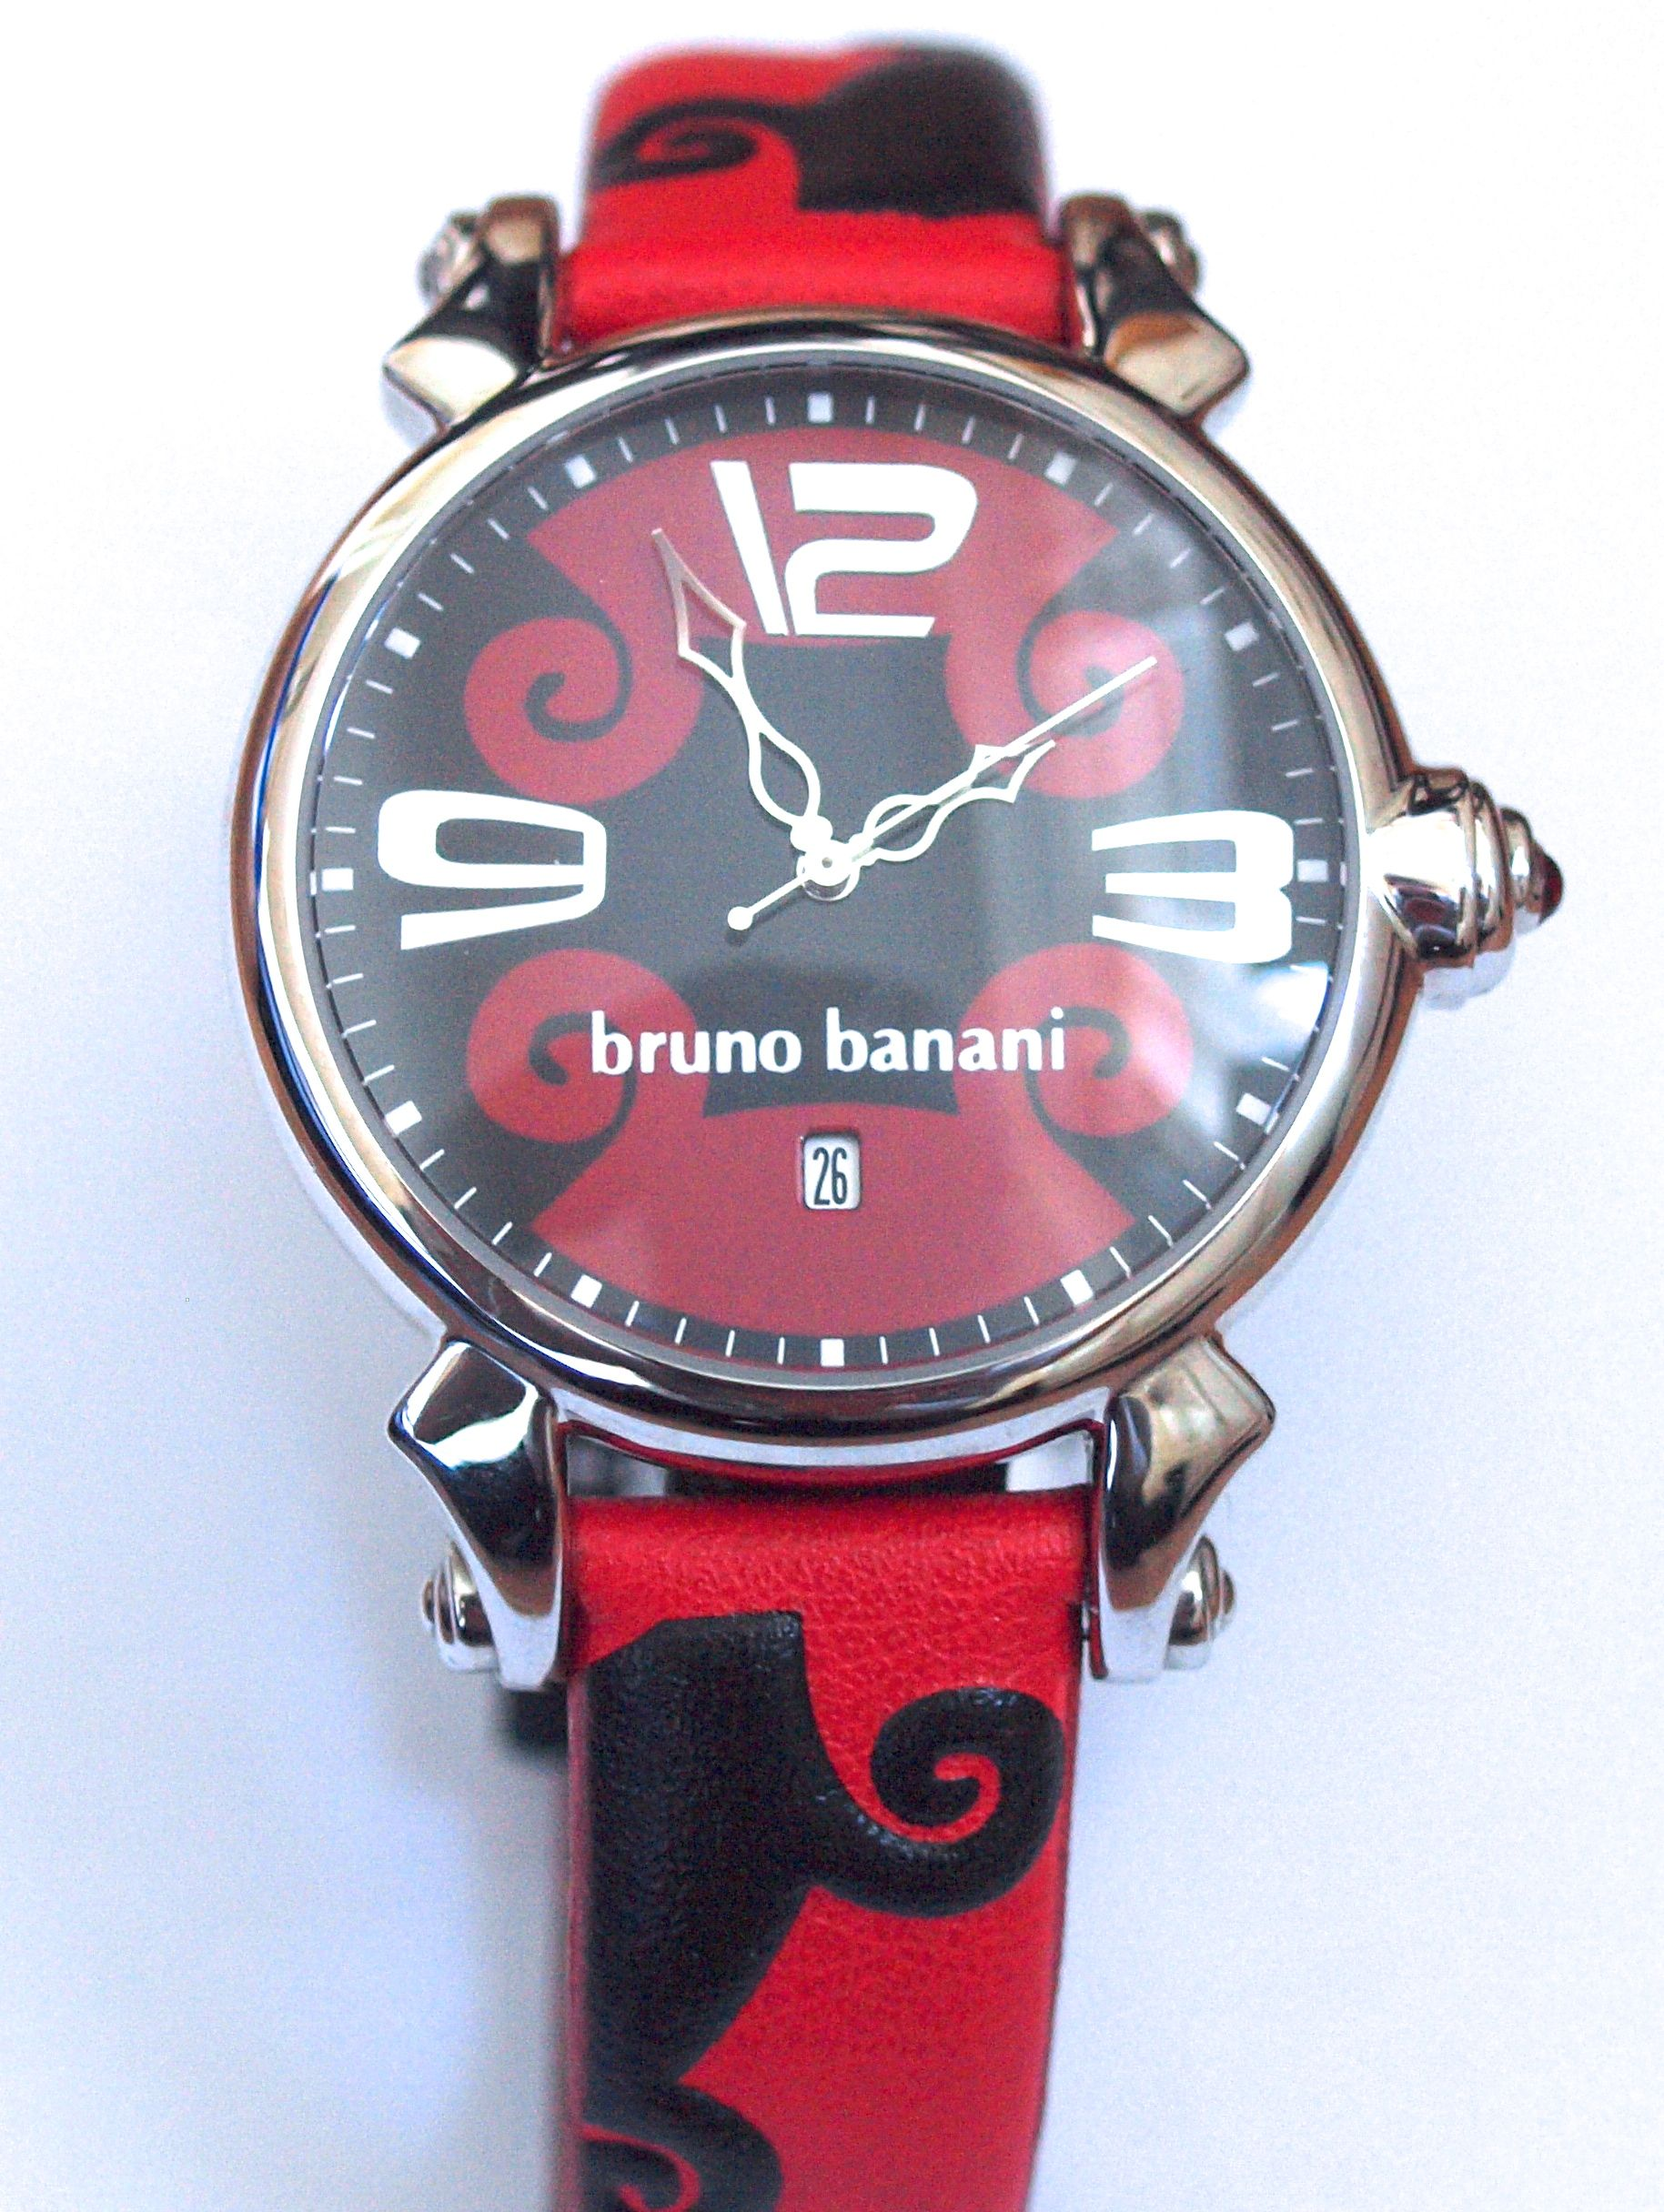 Red and Black Bruno Banani ladies' watch with date. From €100 for €49. See more at - http://www.megawatchoutlet.com/dames/bruno-banani.html